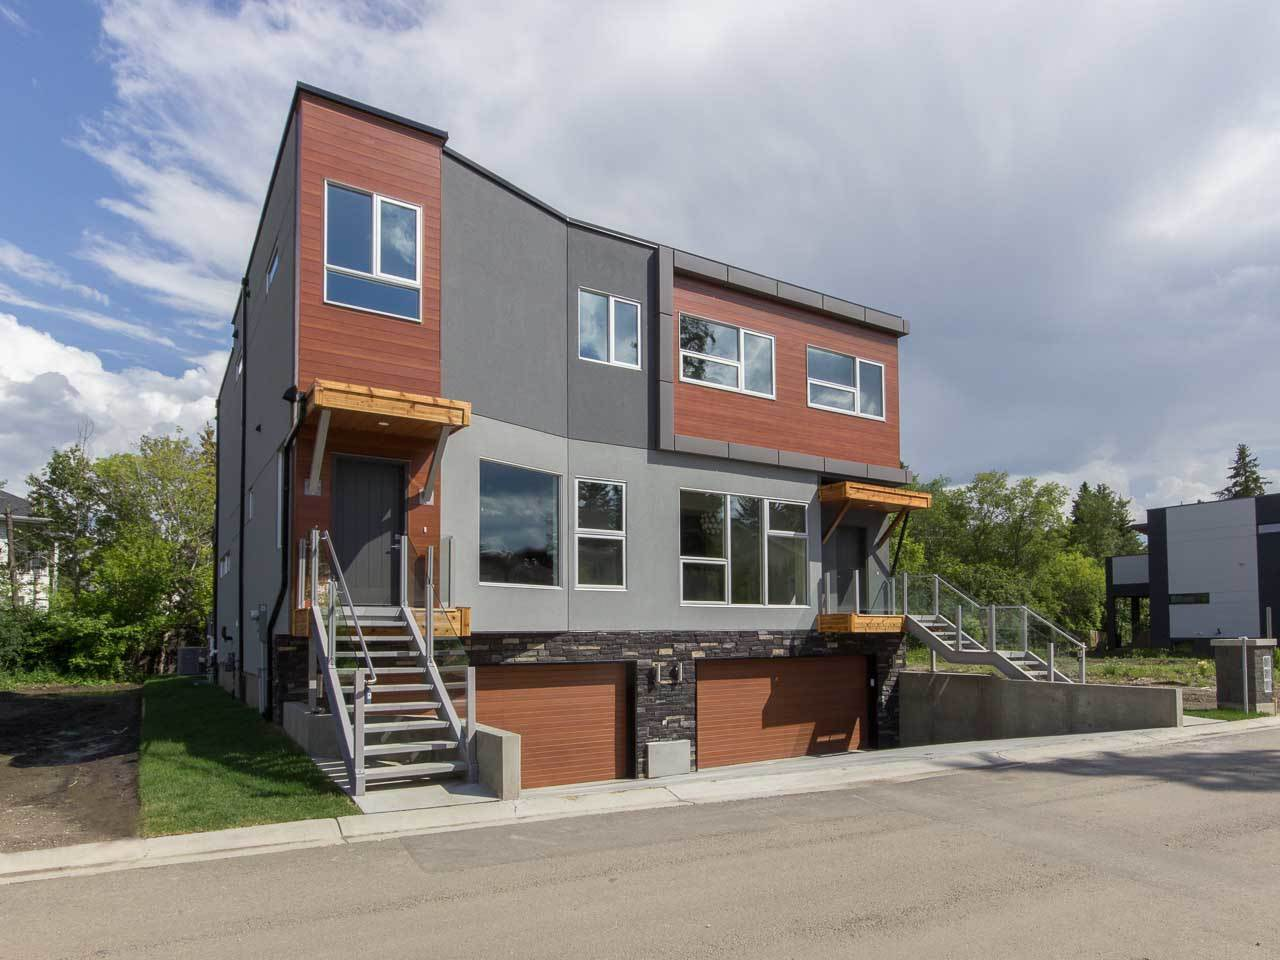 Main Photo: 20 SYLVANCROFT in Edmonton: Zone 07 House Half Duplex for sale : MLS® # E4060375